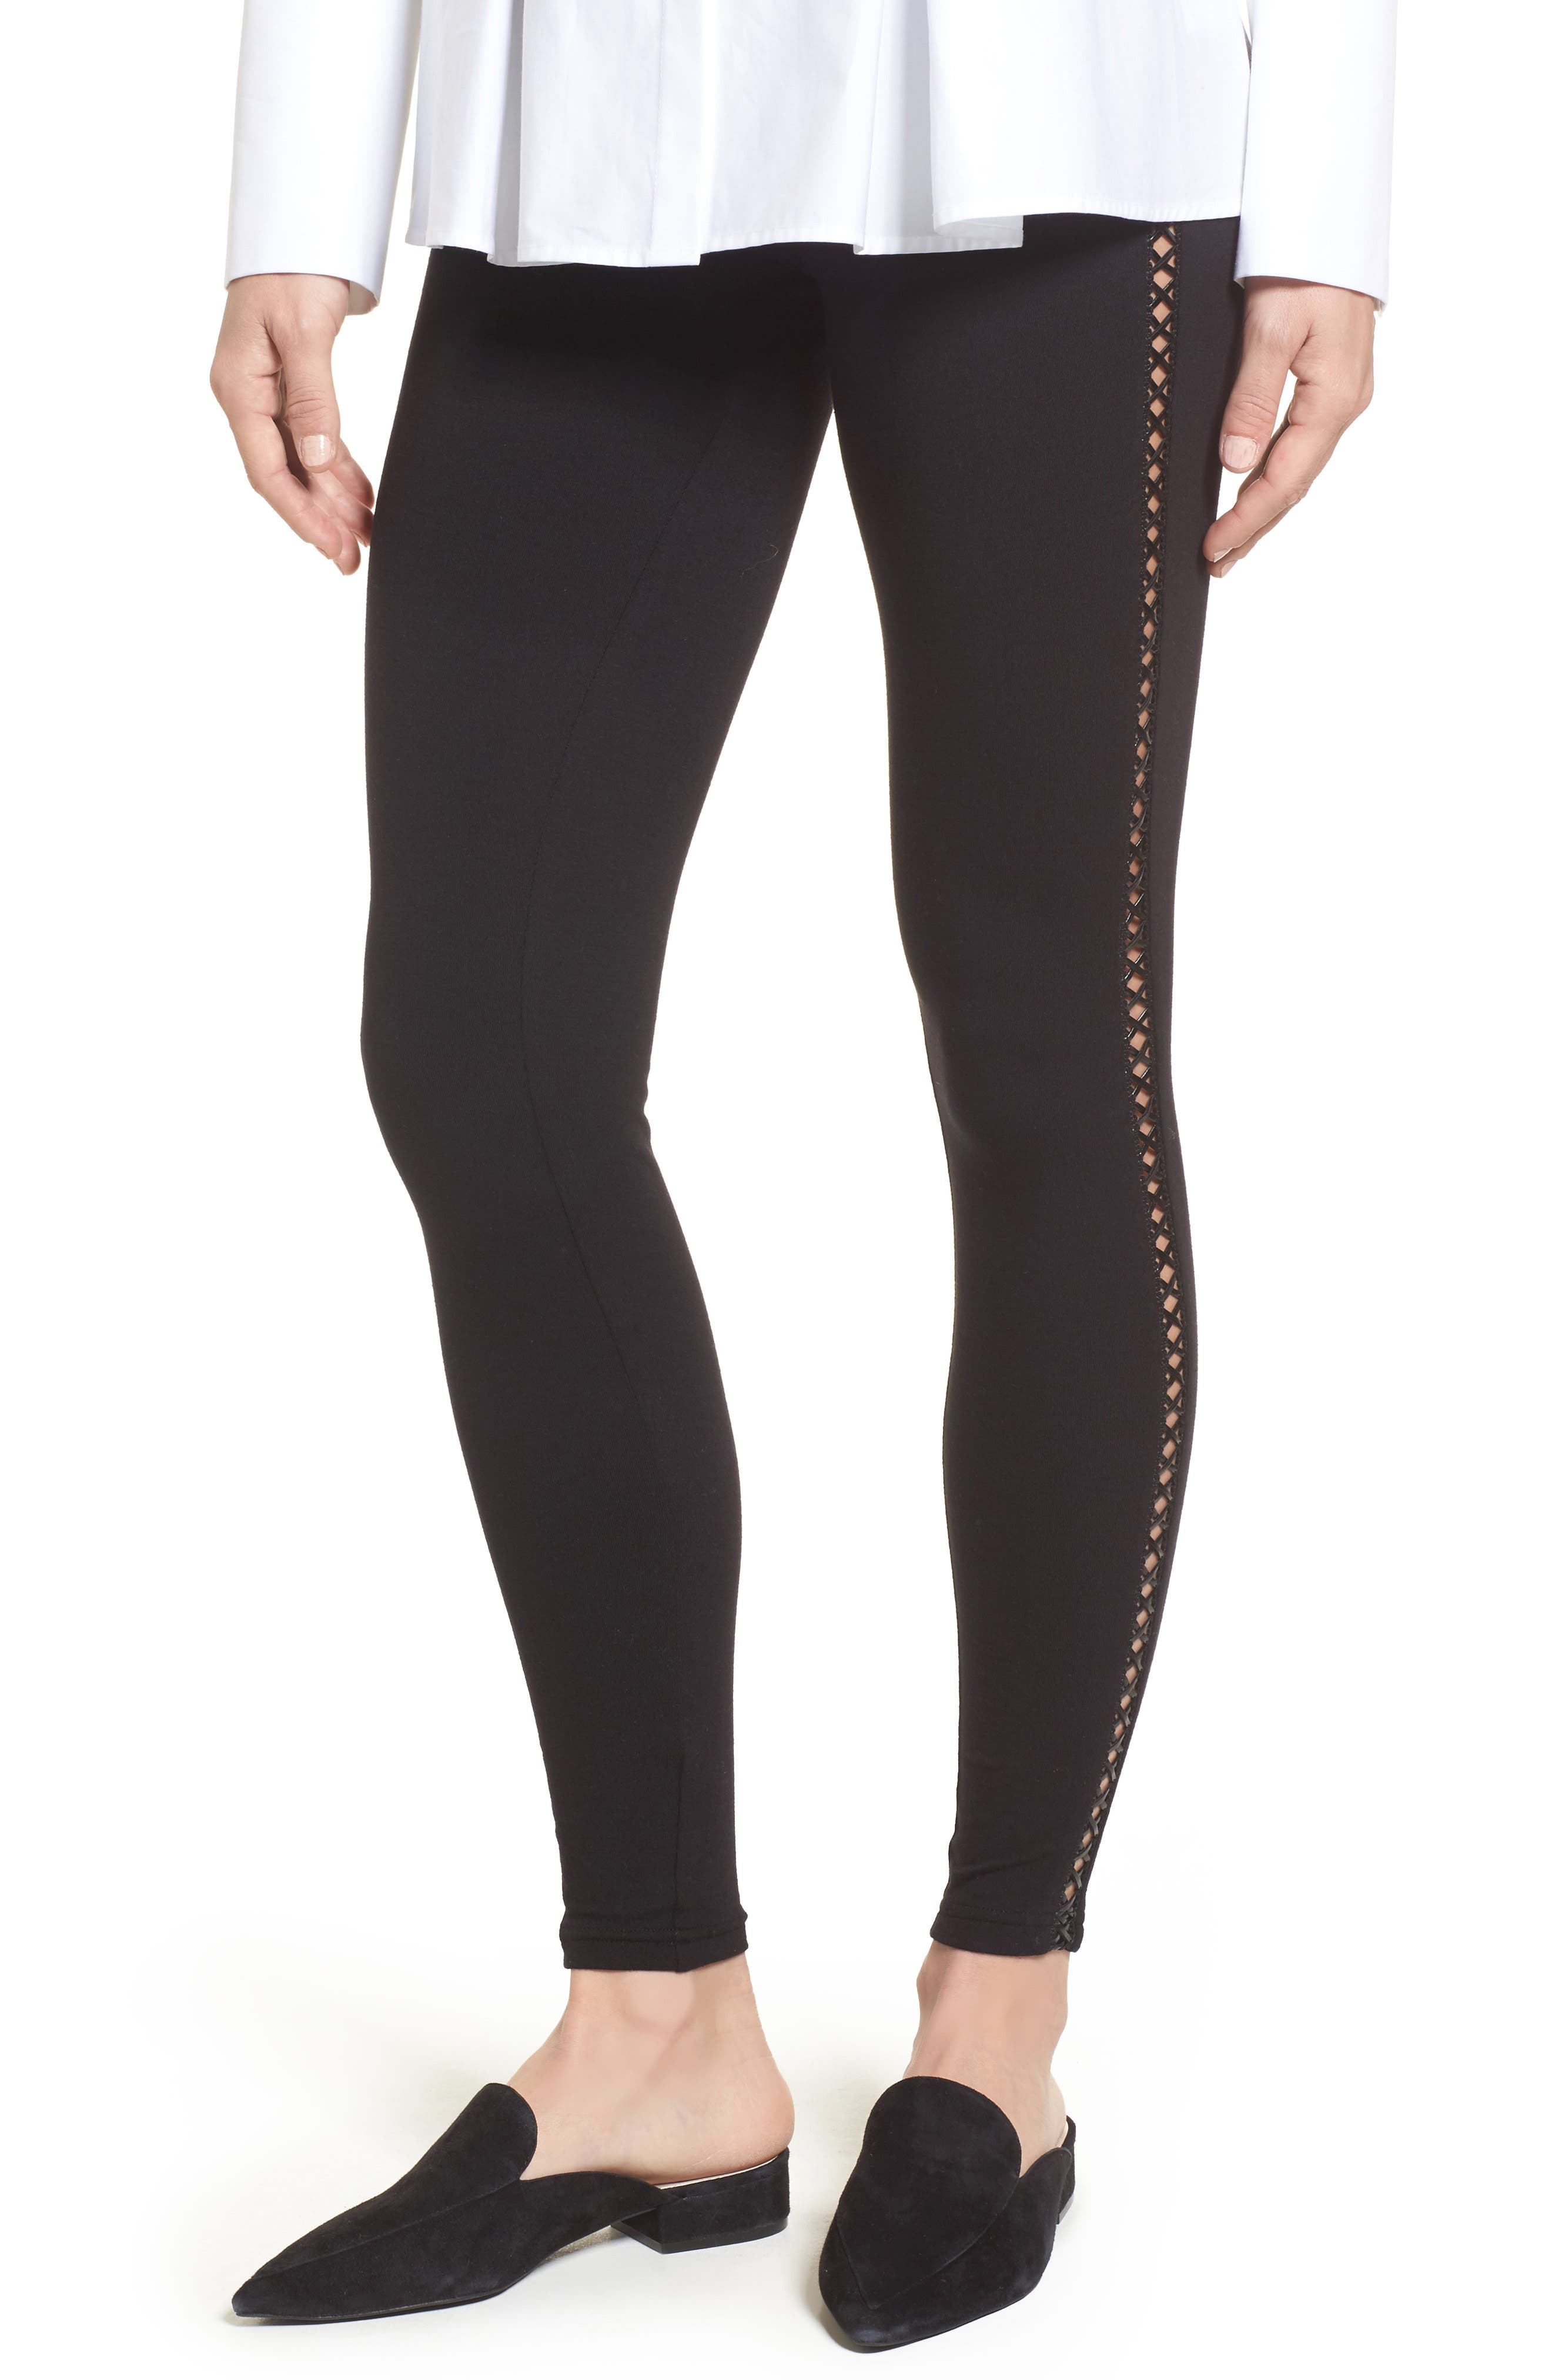 Zeza B by Hue Faux Leather Tuxedo Stripe Leggings